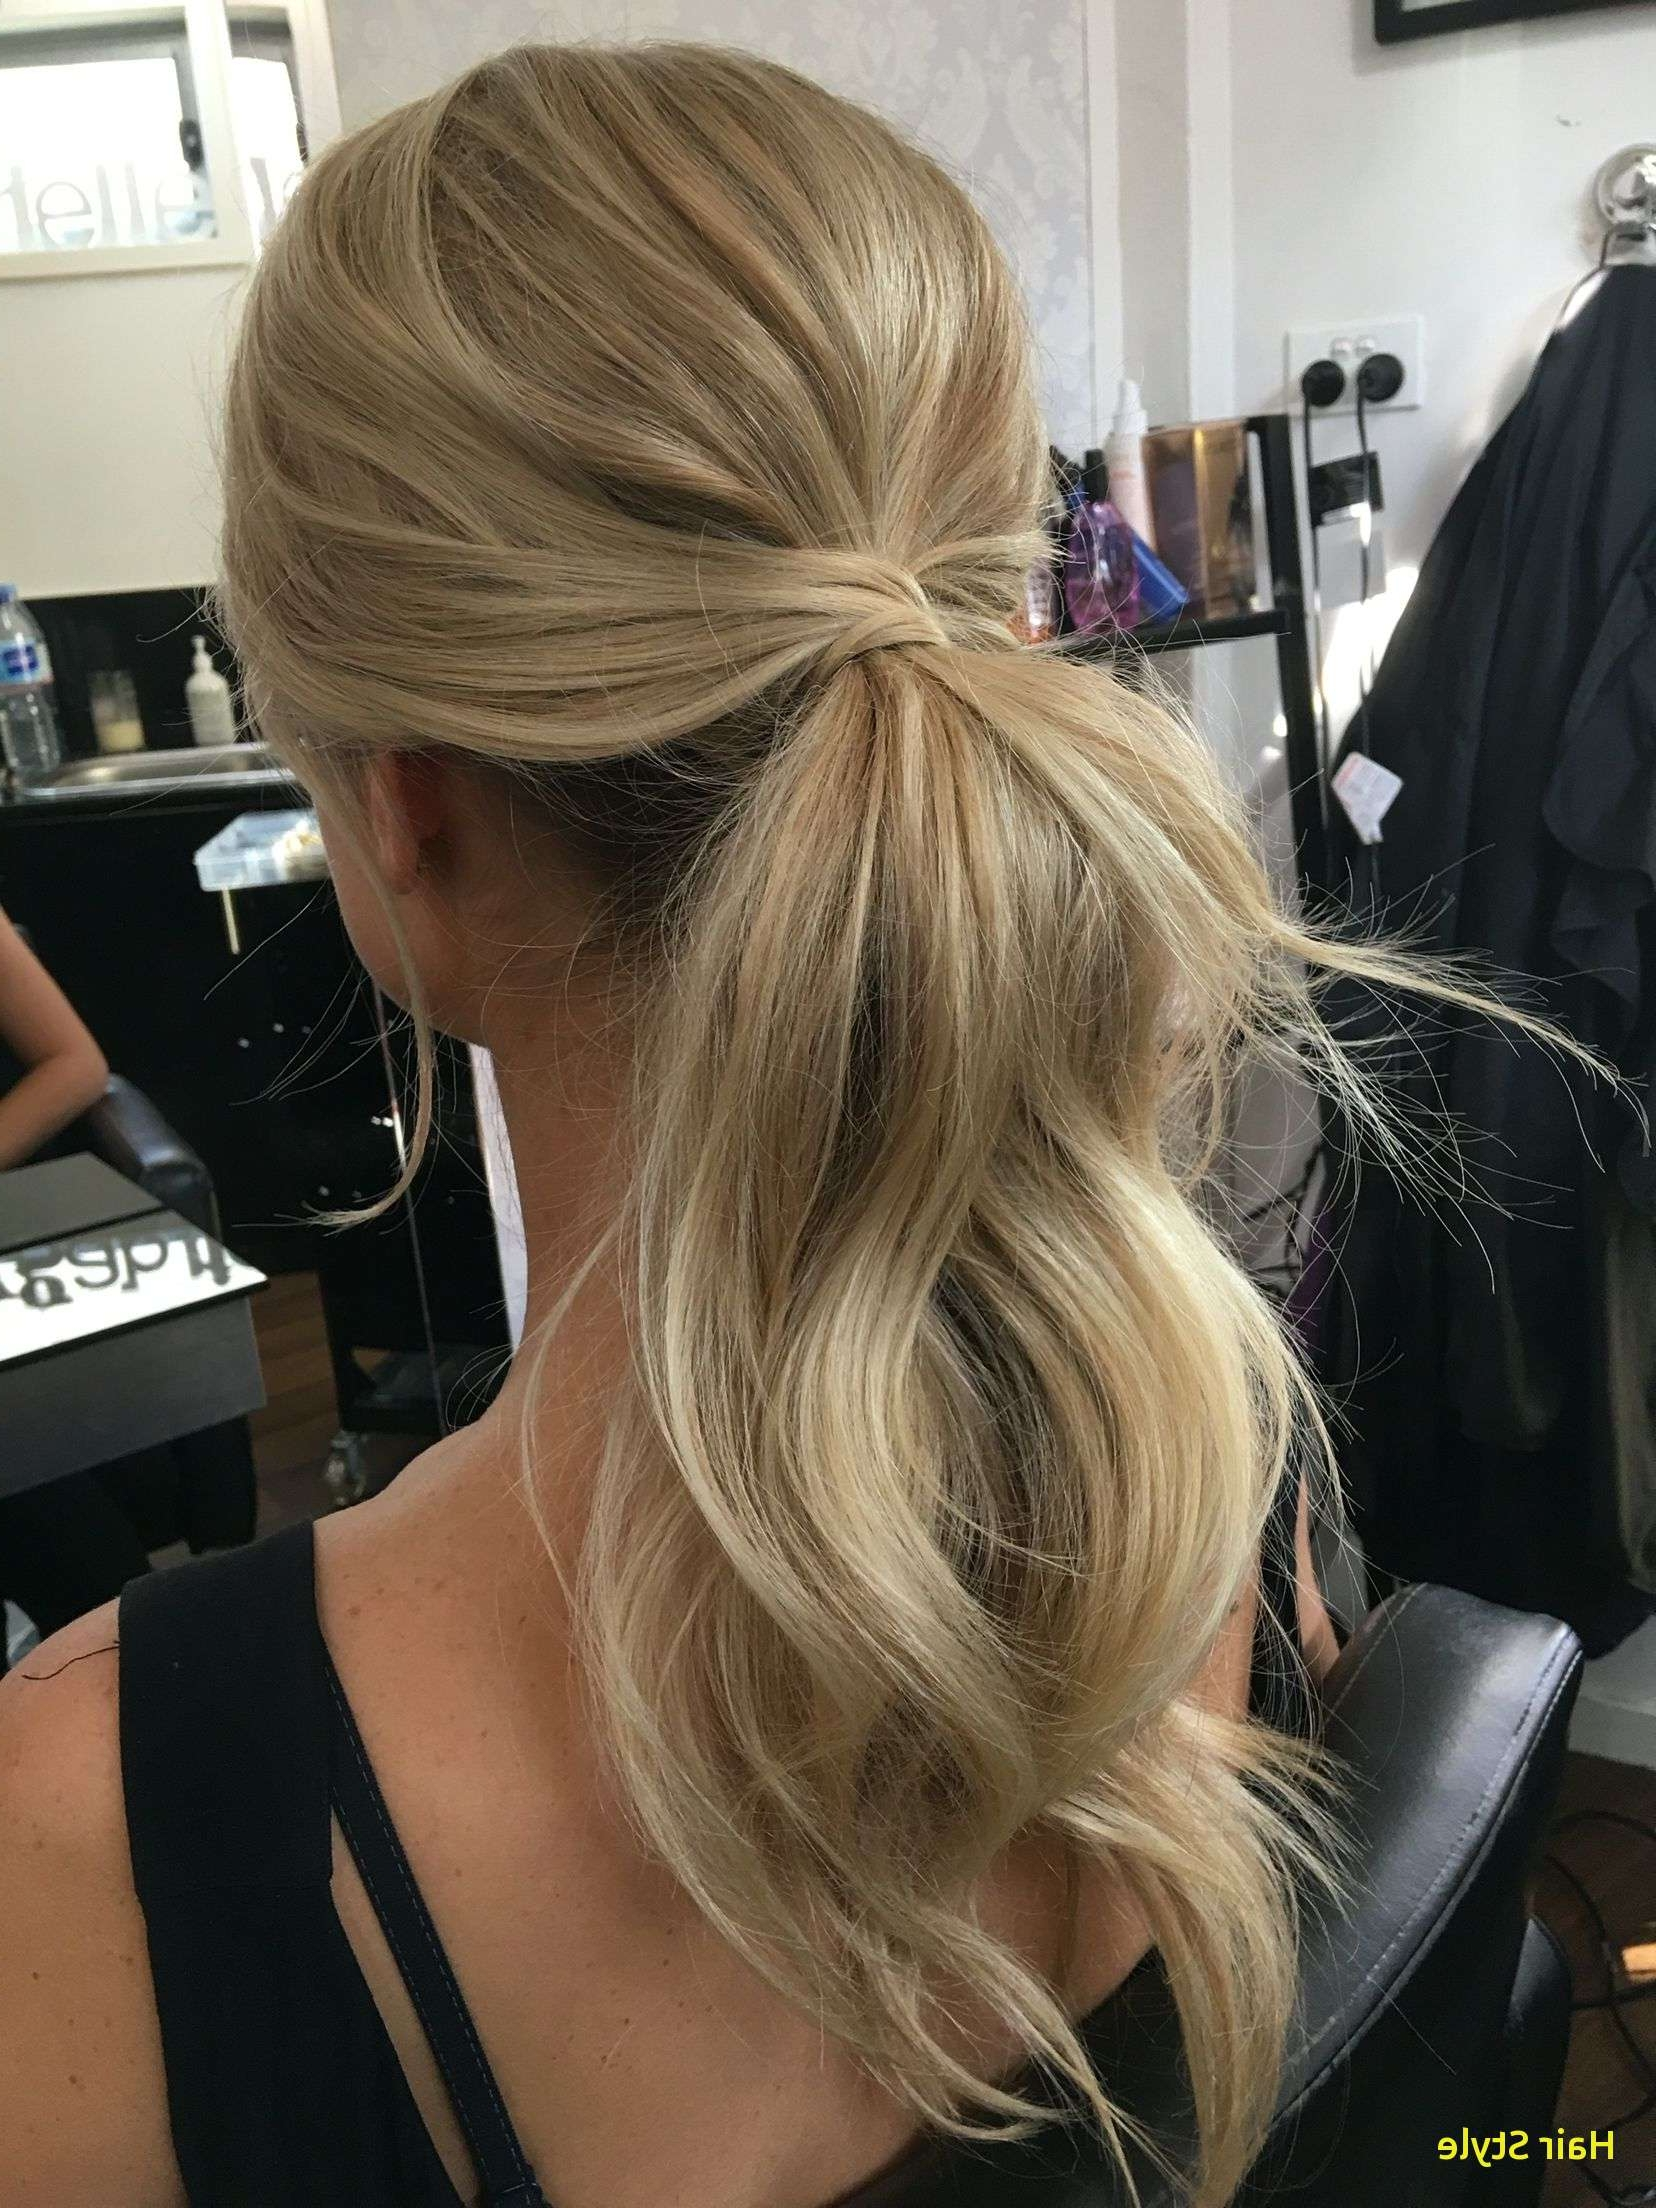 Well Liked Messy Low Ponytail Hairstyles Throughout Awesome Low Ponytail Wedding Hairstyles (View 20 of 20)